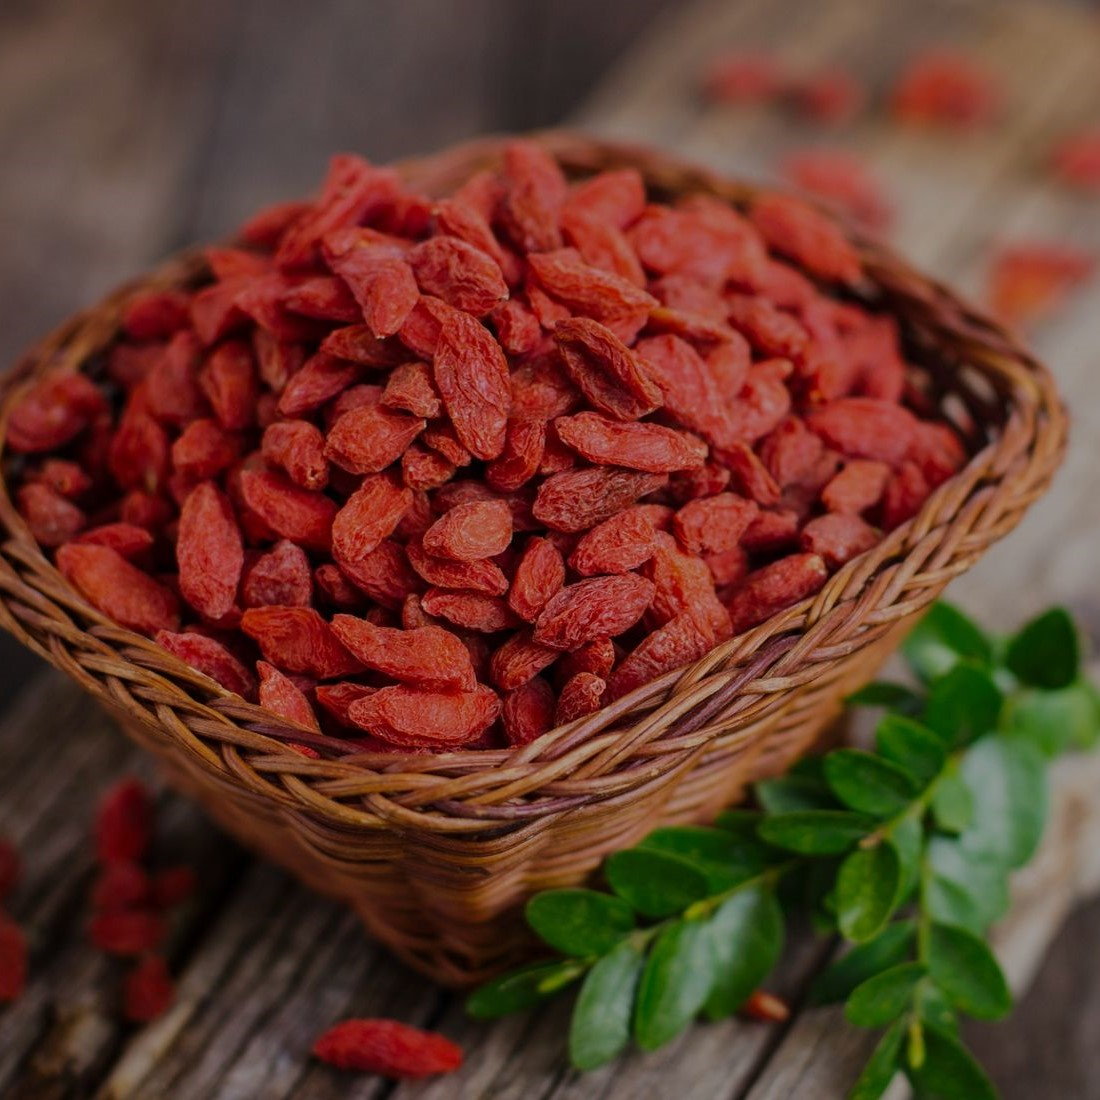 Baies de Goji : super-aliment par excellence <br>